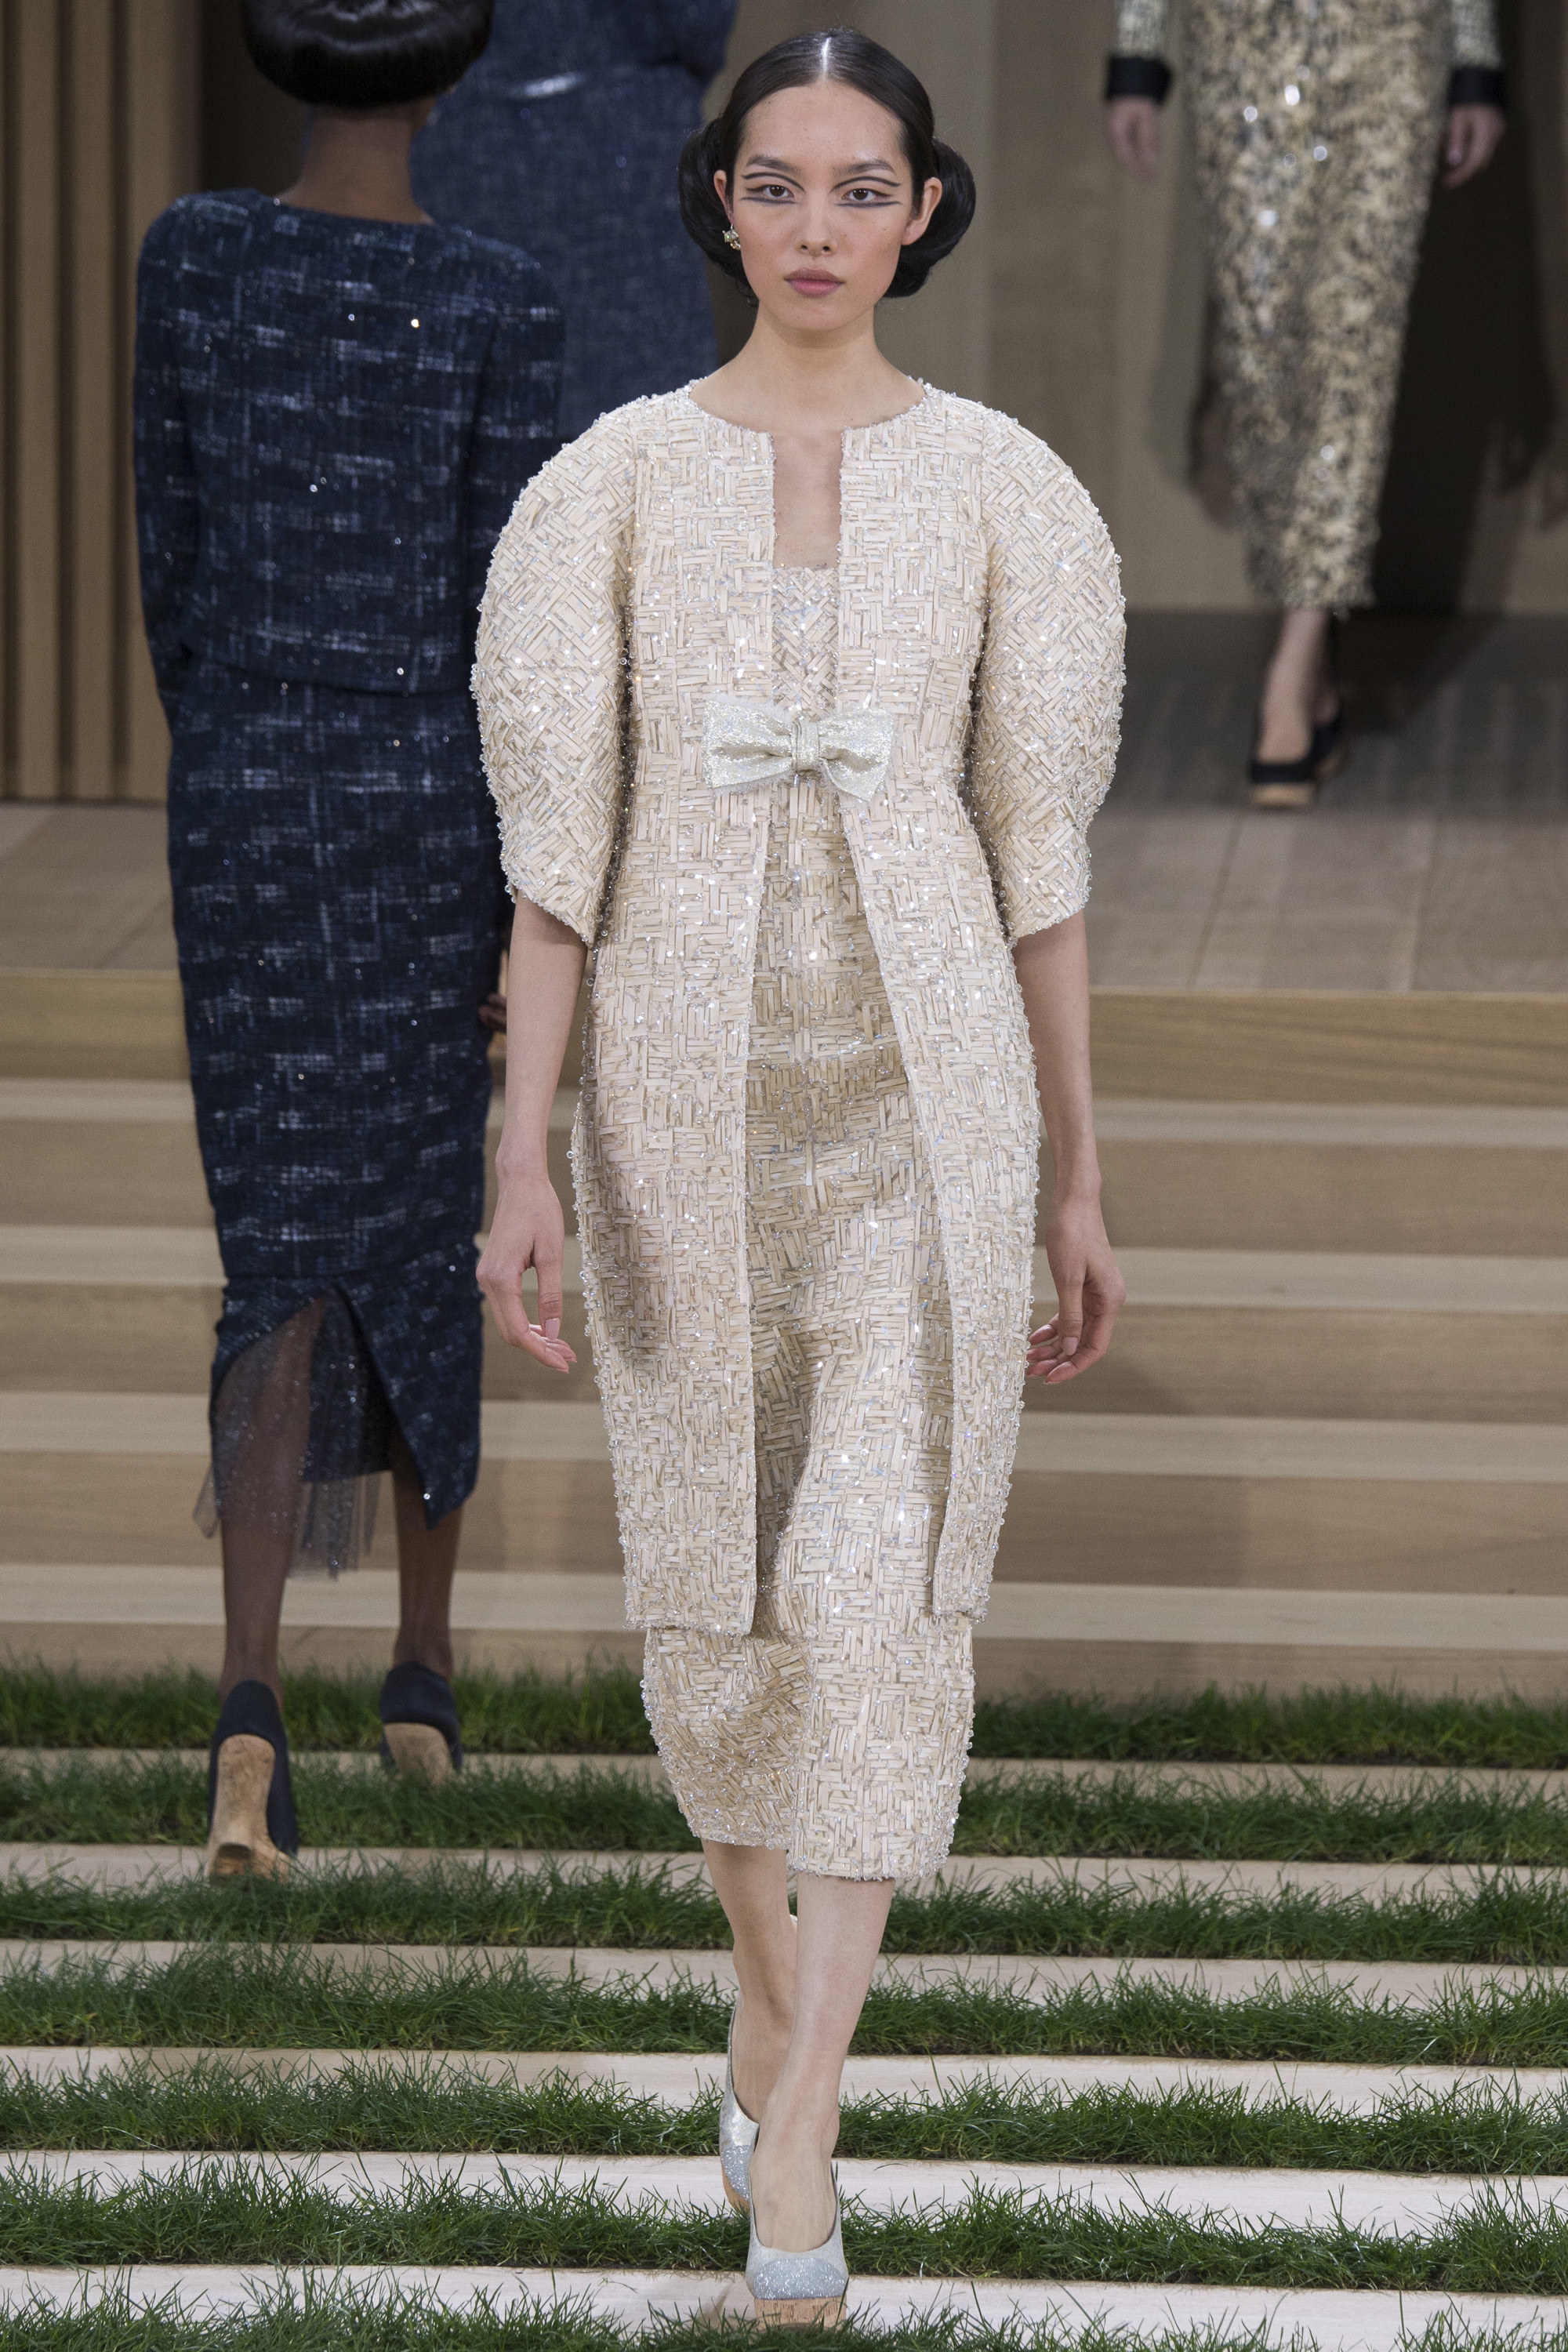 Chanel-Couture-Spring-2016-Paris-Fashion-Week-6.jpg